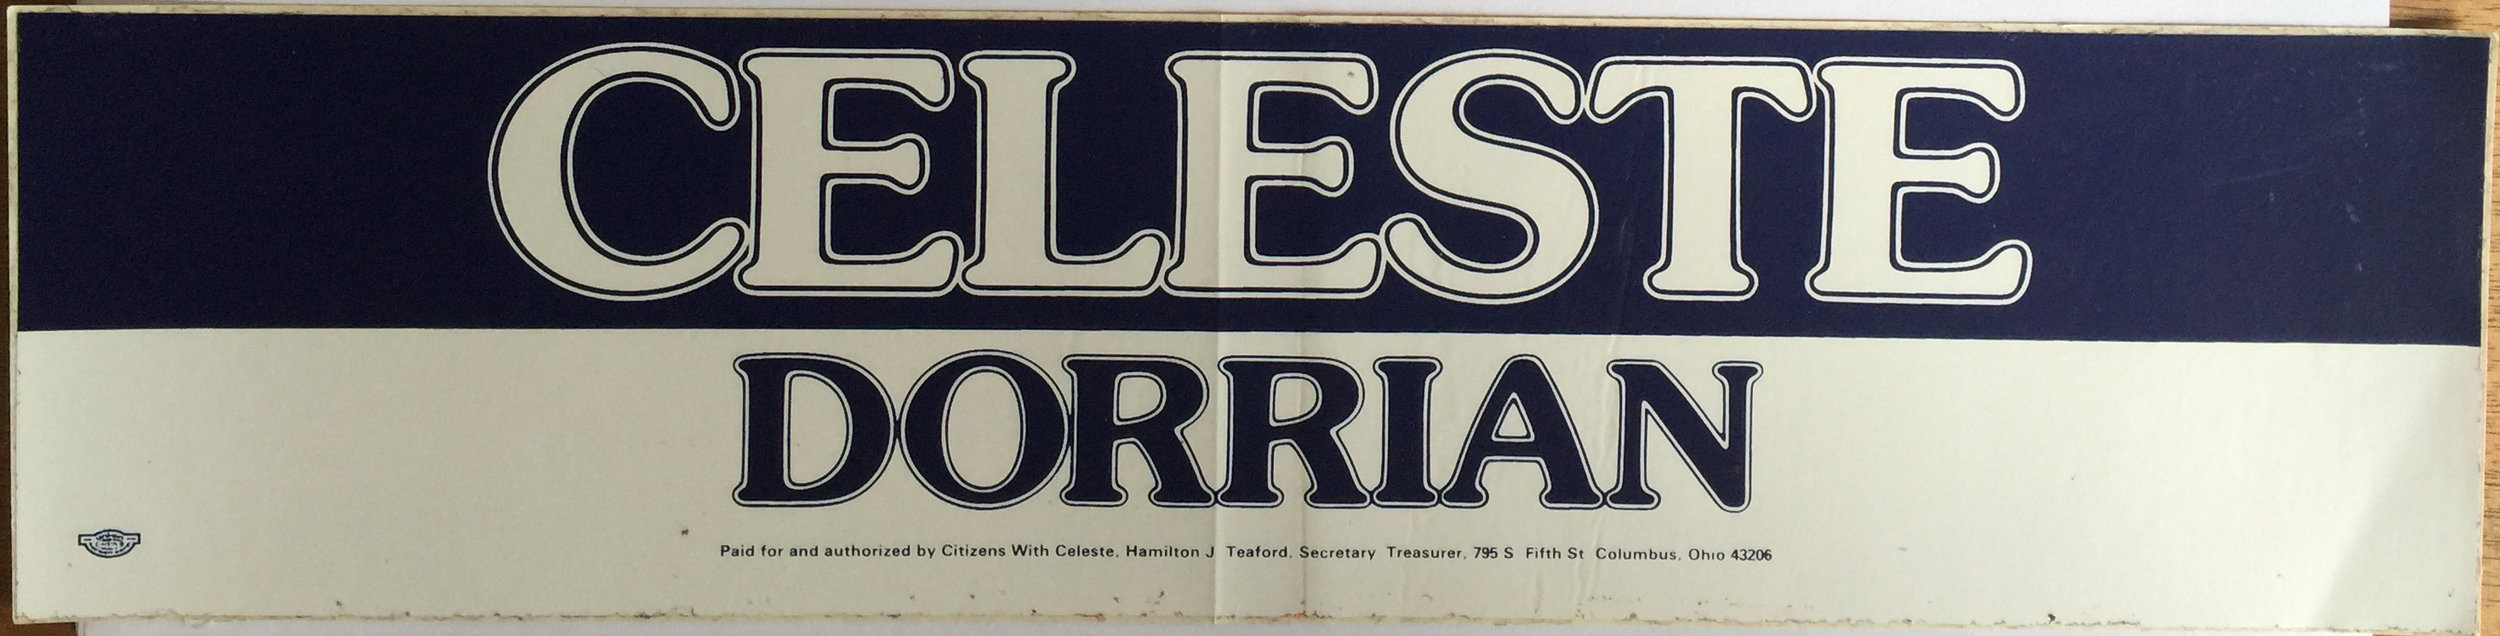 Sticker-gov1978 CELESTE 1.jpg